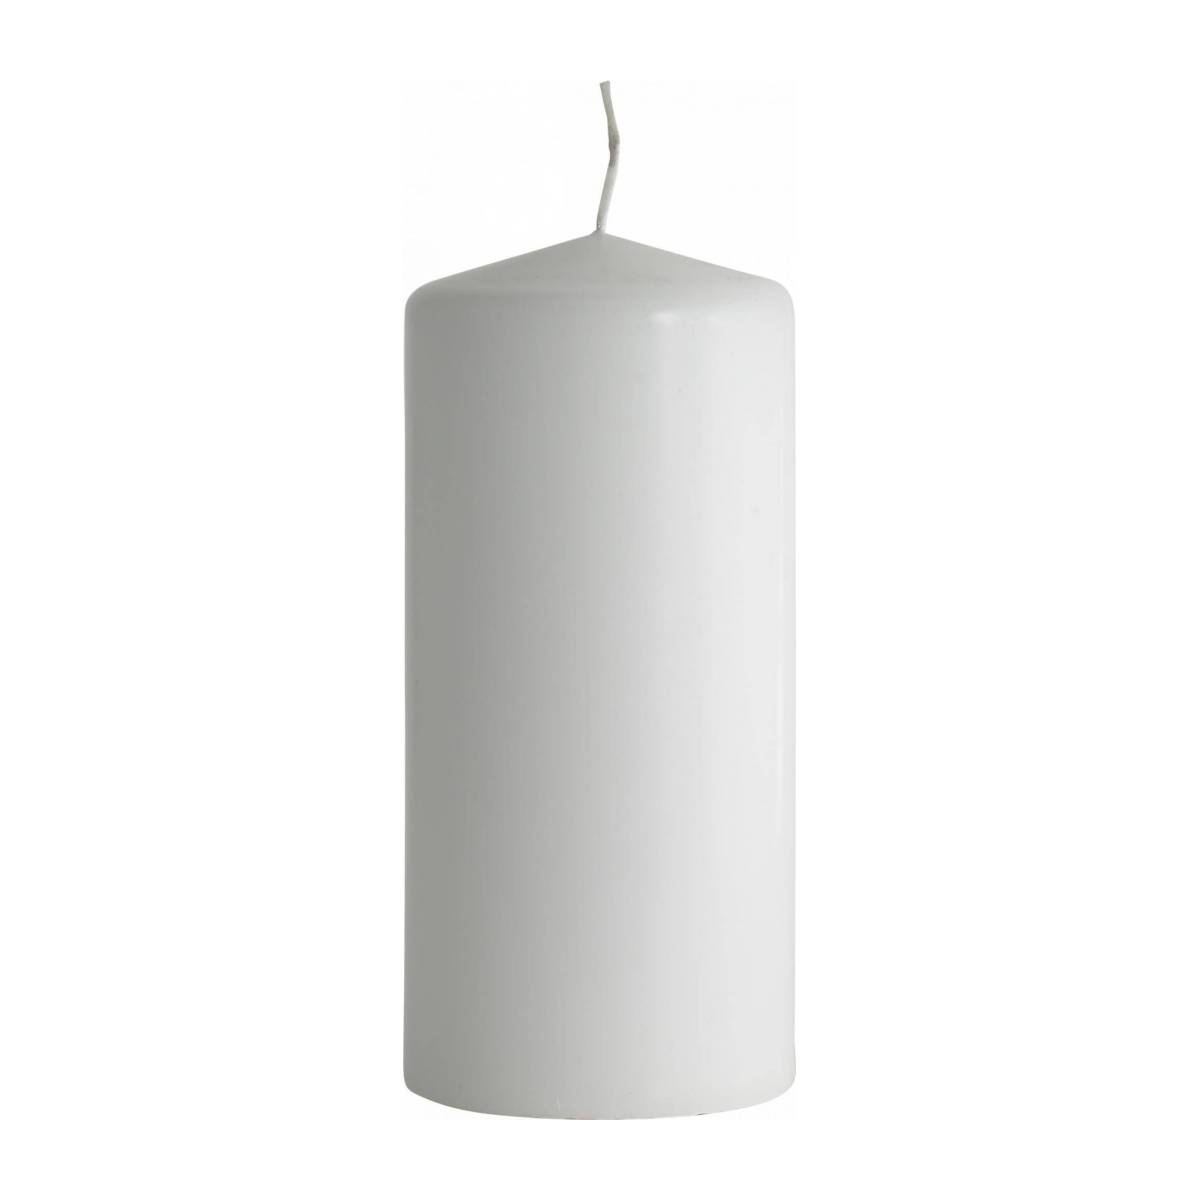 Bougie cylindre 15cm blanche n°1